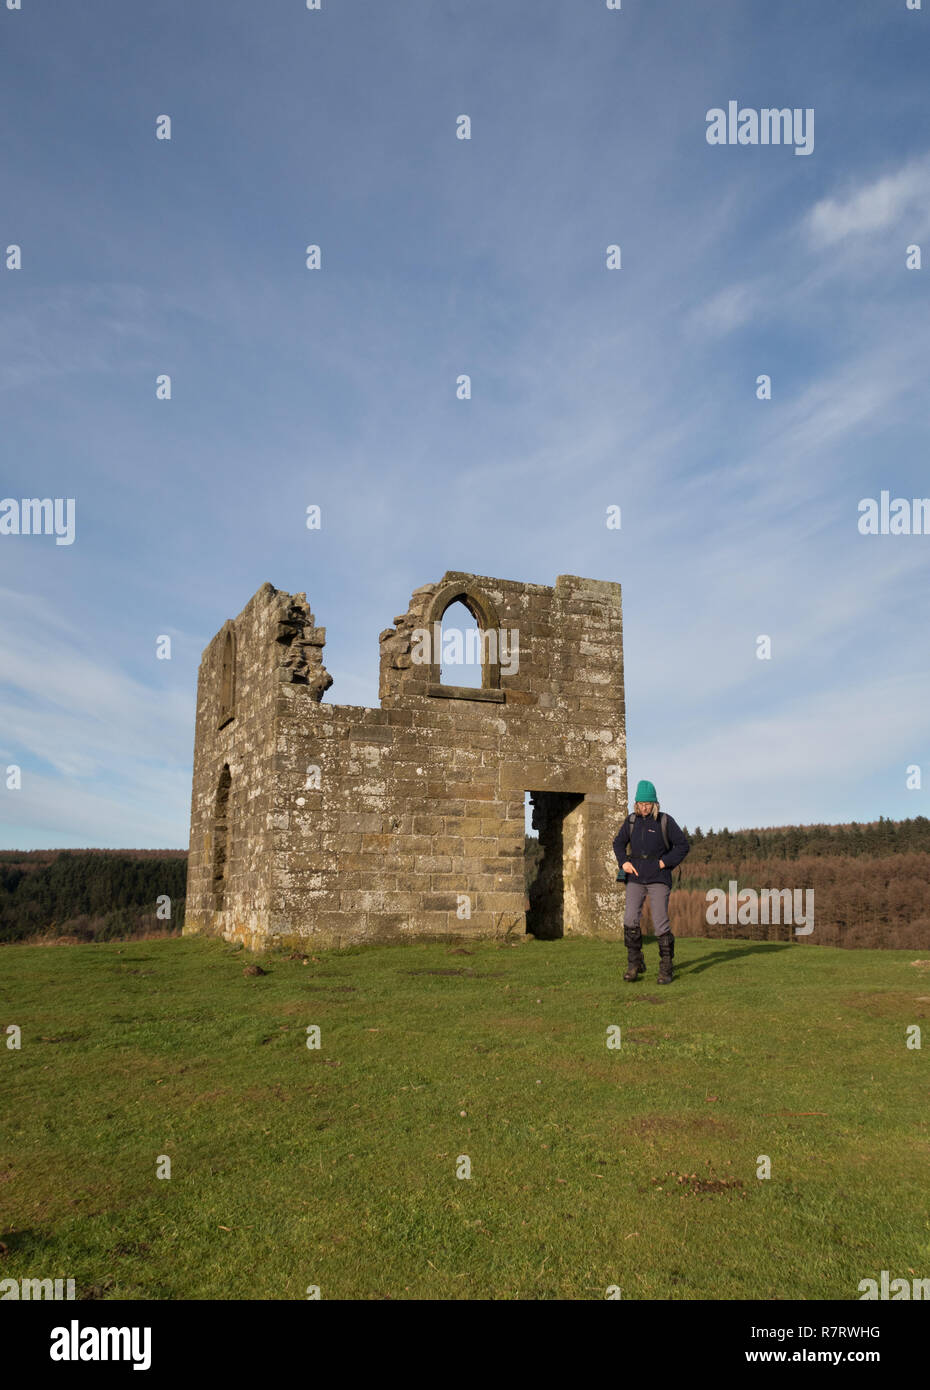 A walker near Skelton Tower, overlooking Newtondale in the North York Moors - Stock Image